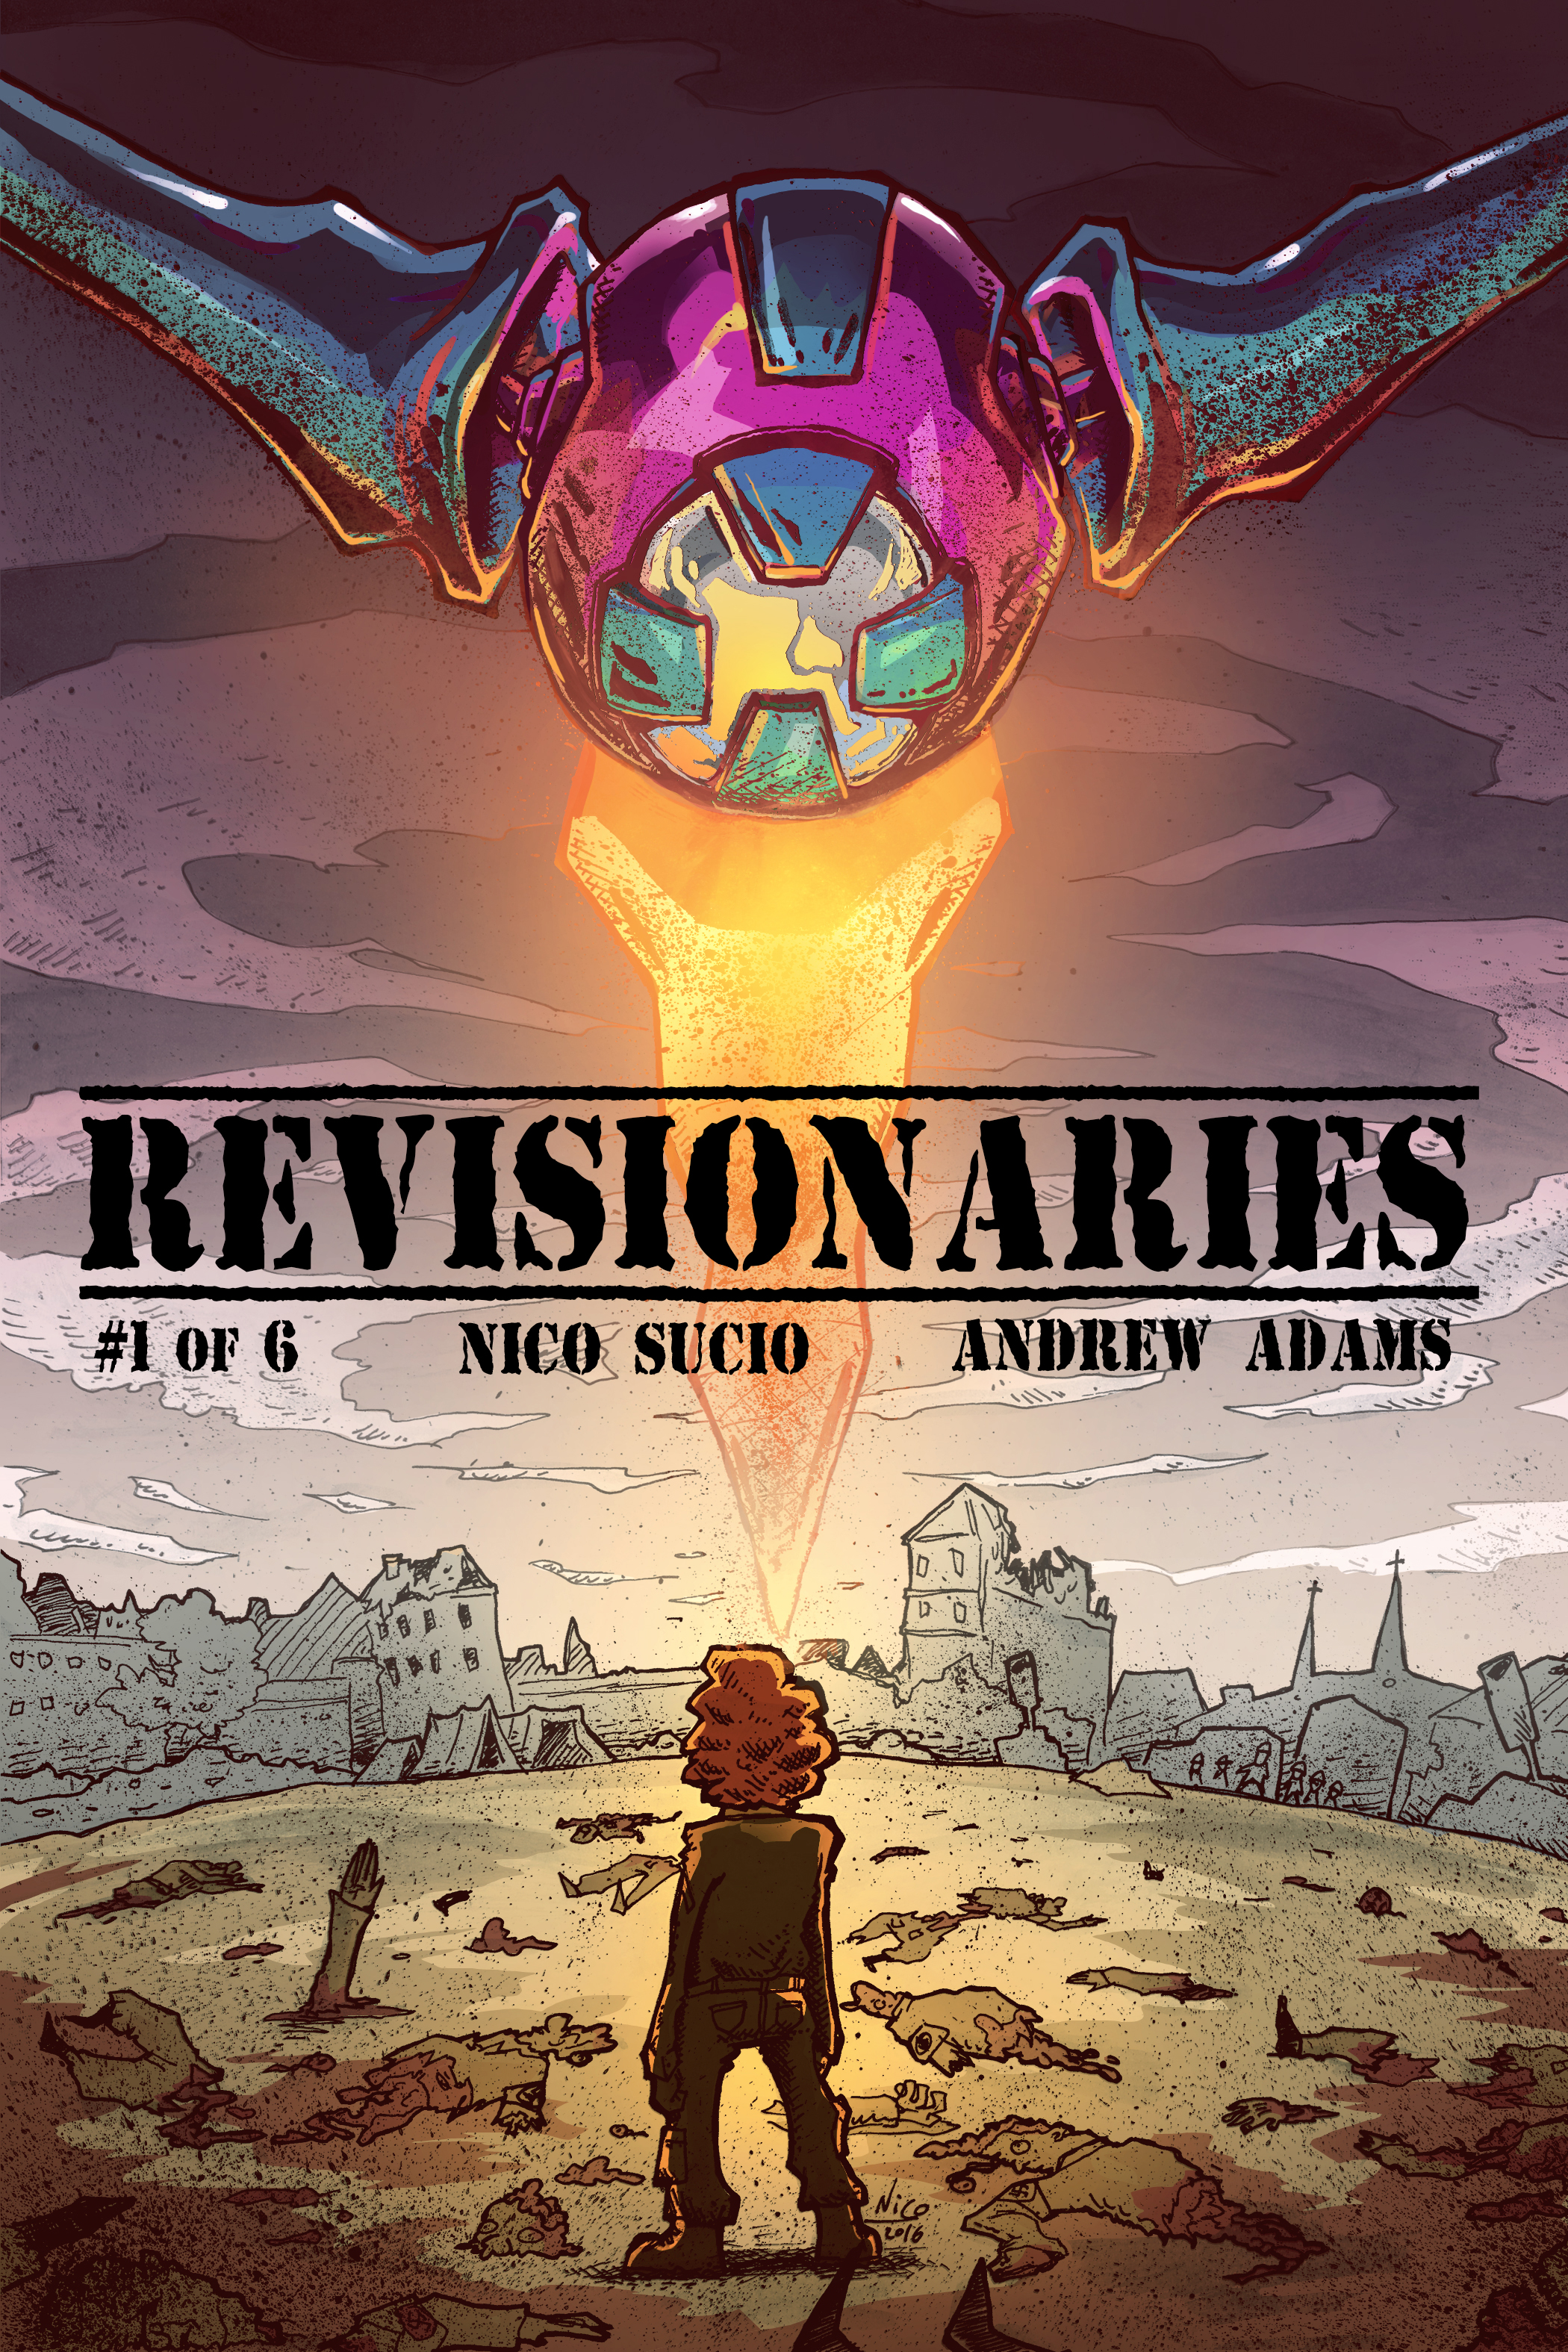 Revisionaries #1 [Cover]